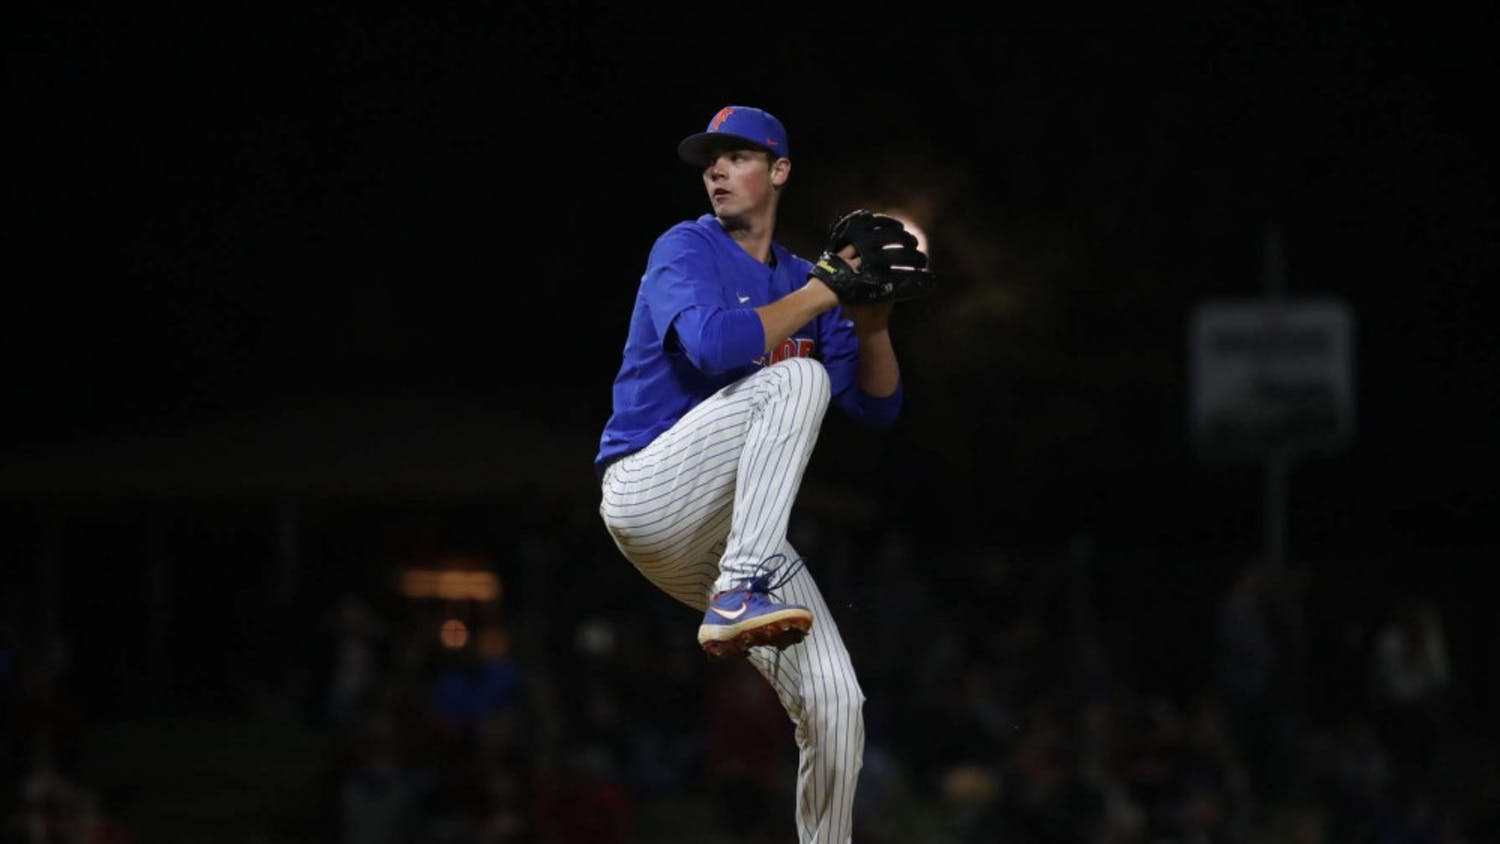 Hunter Barco, a 19-year-old UF business administration freshman, pitches in an exhibition game against Georgia. He threw one inning and struck out three batters against the Bulldogs.